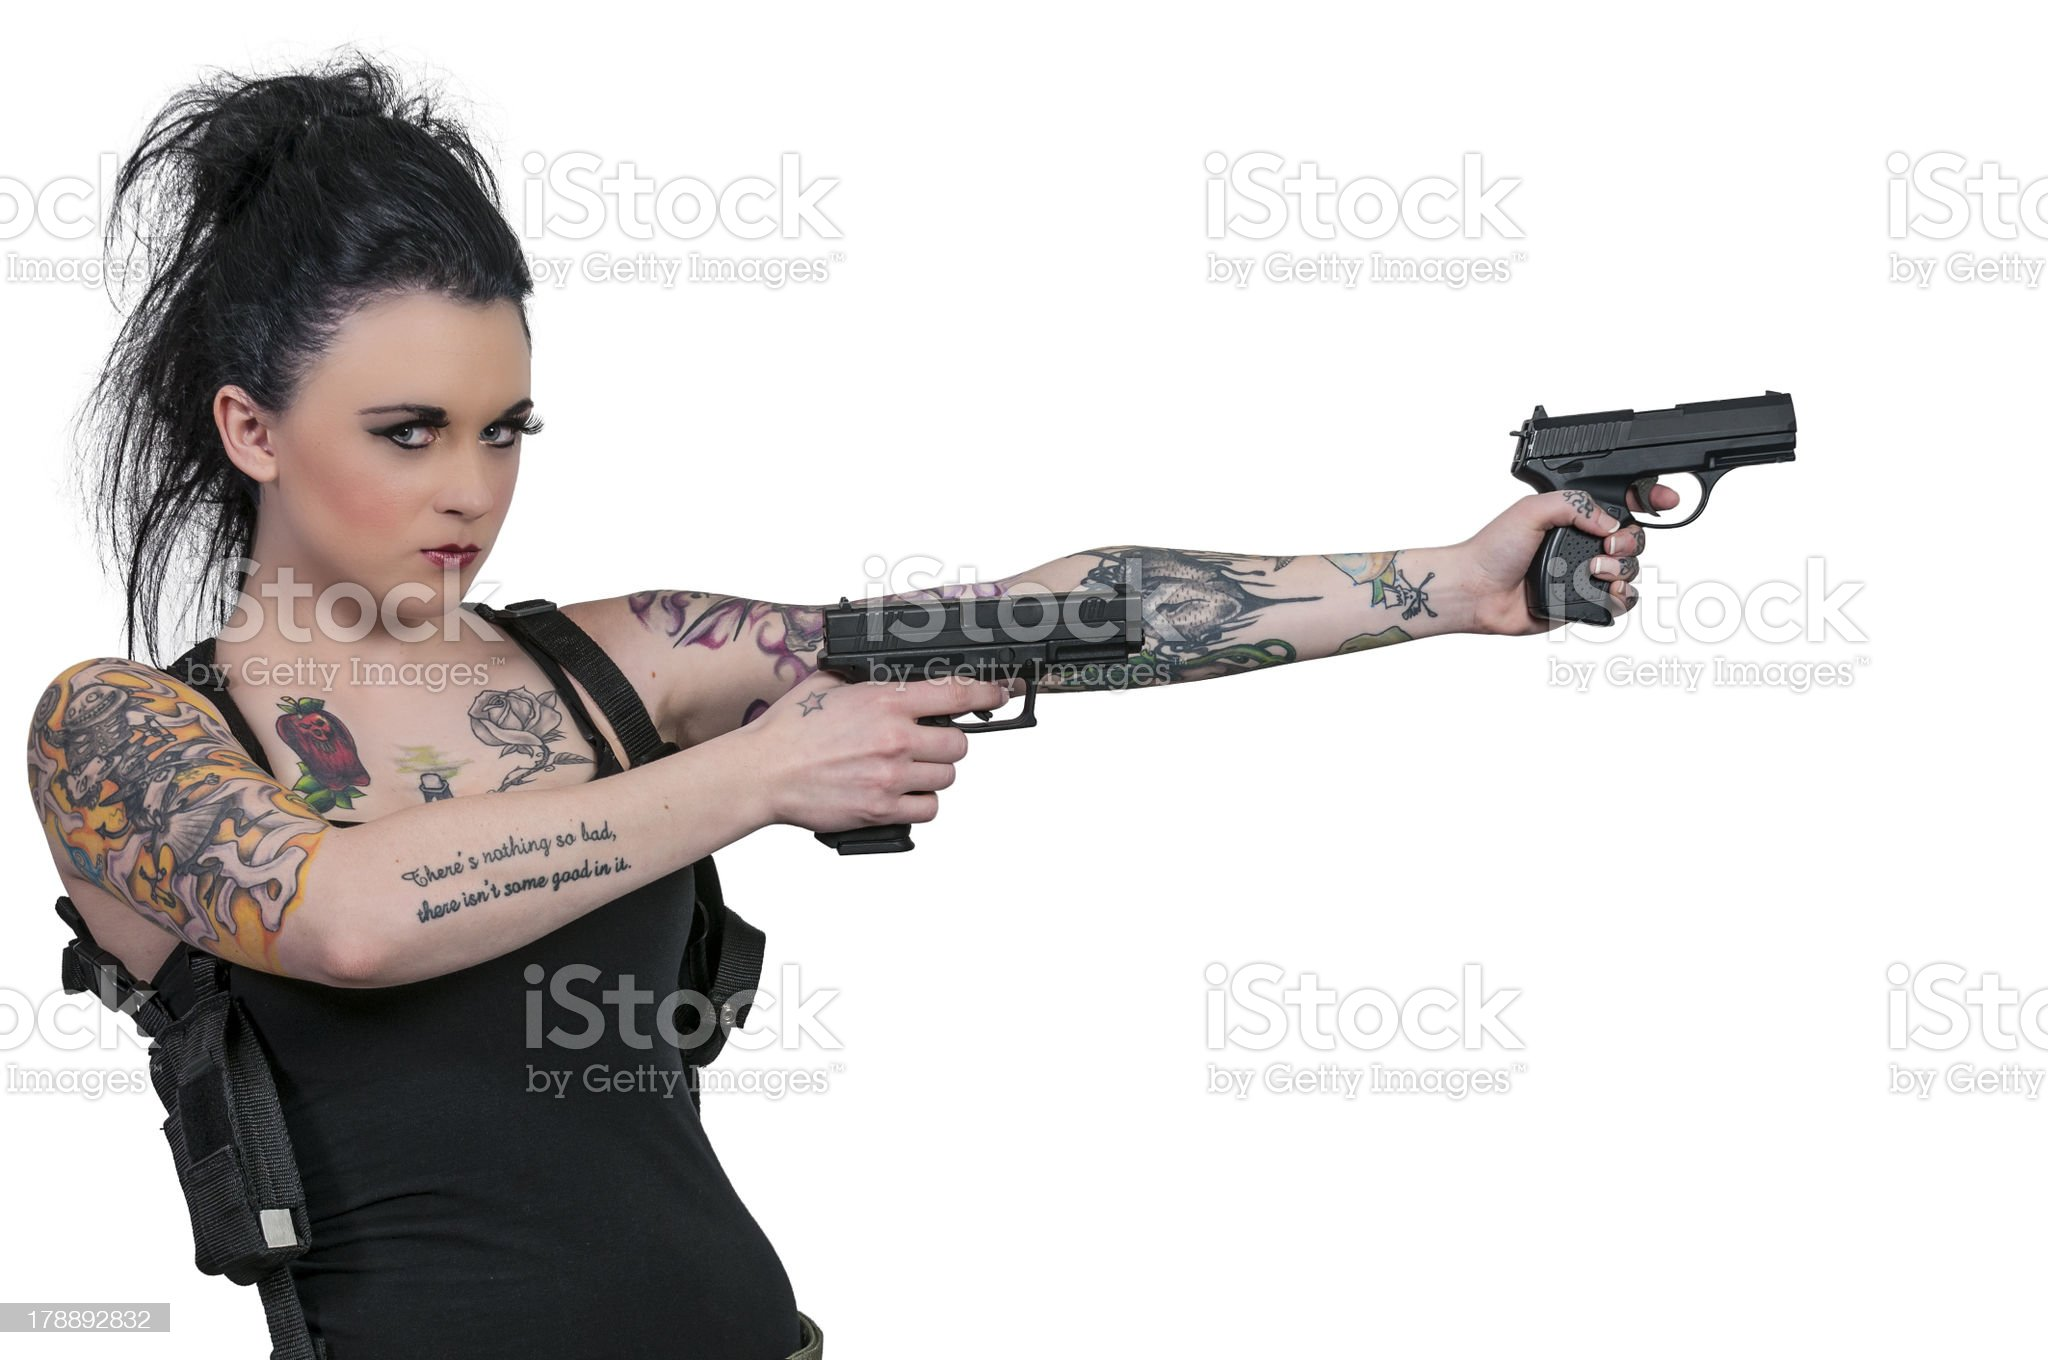 Woman with Pistols royalty-free stock photo